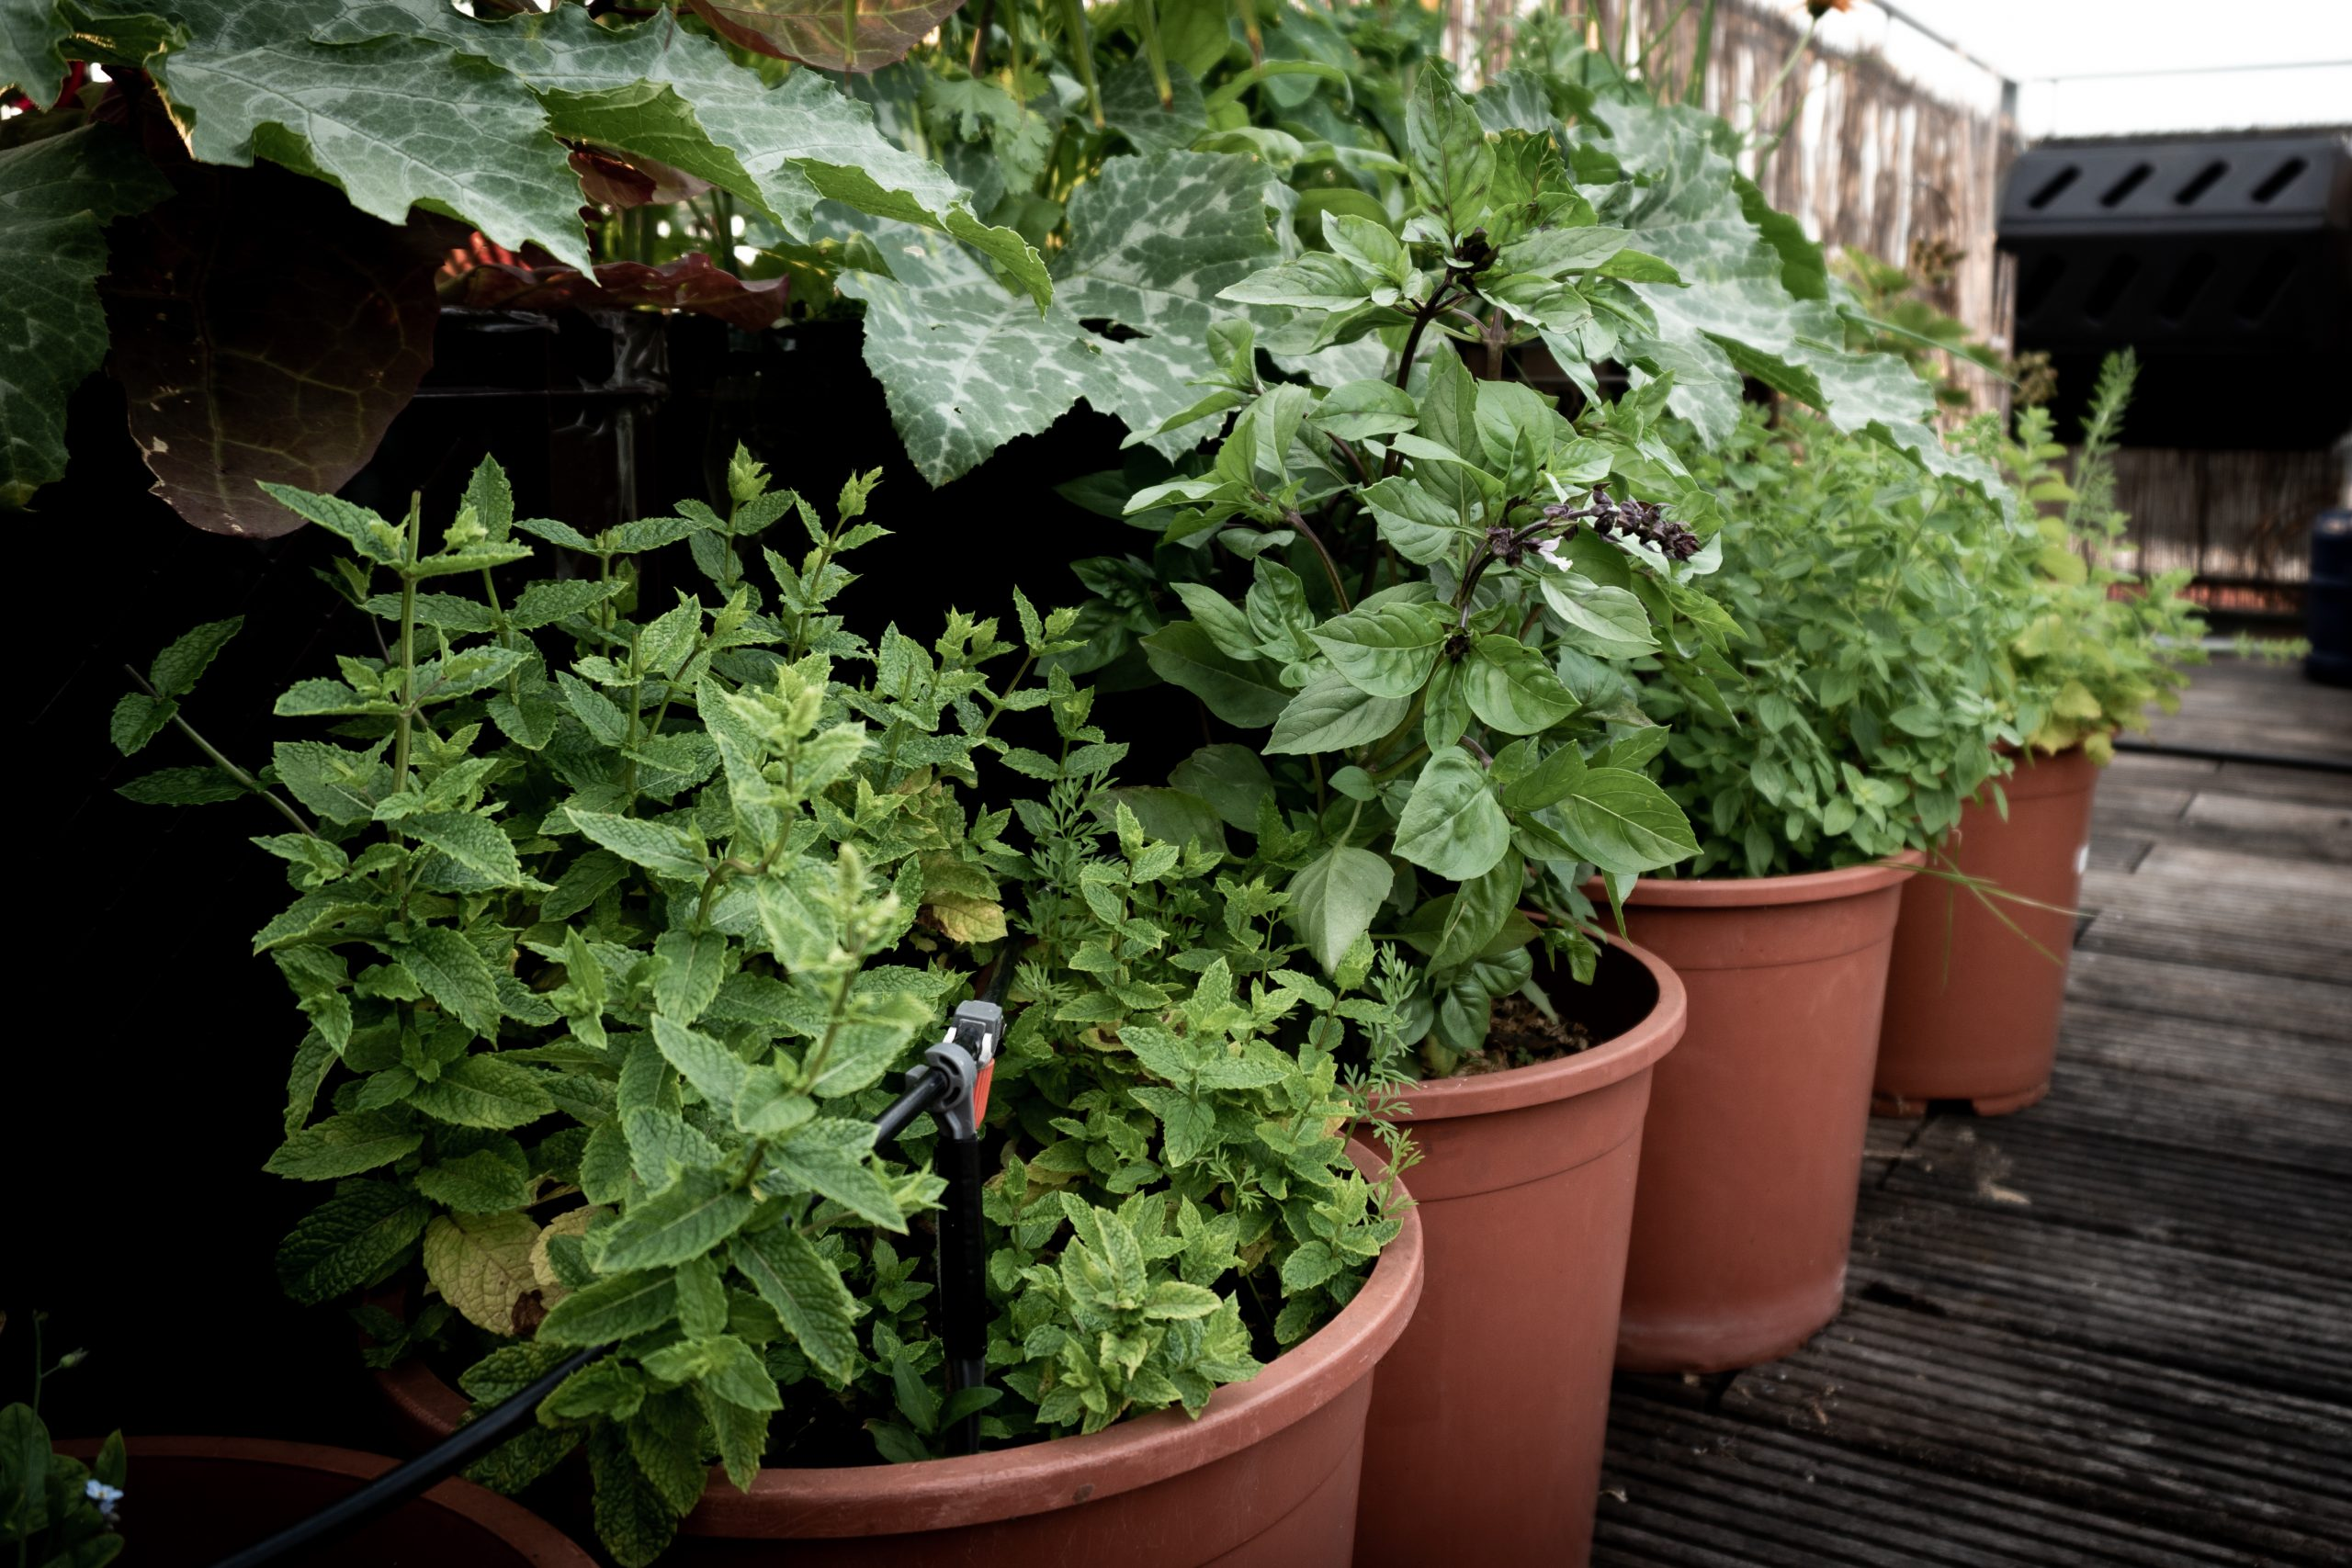 a few of the best medicinal herbs to grow outdoors in pots